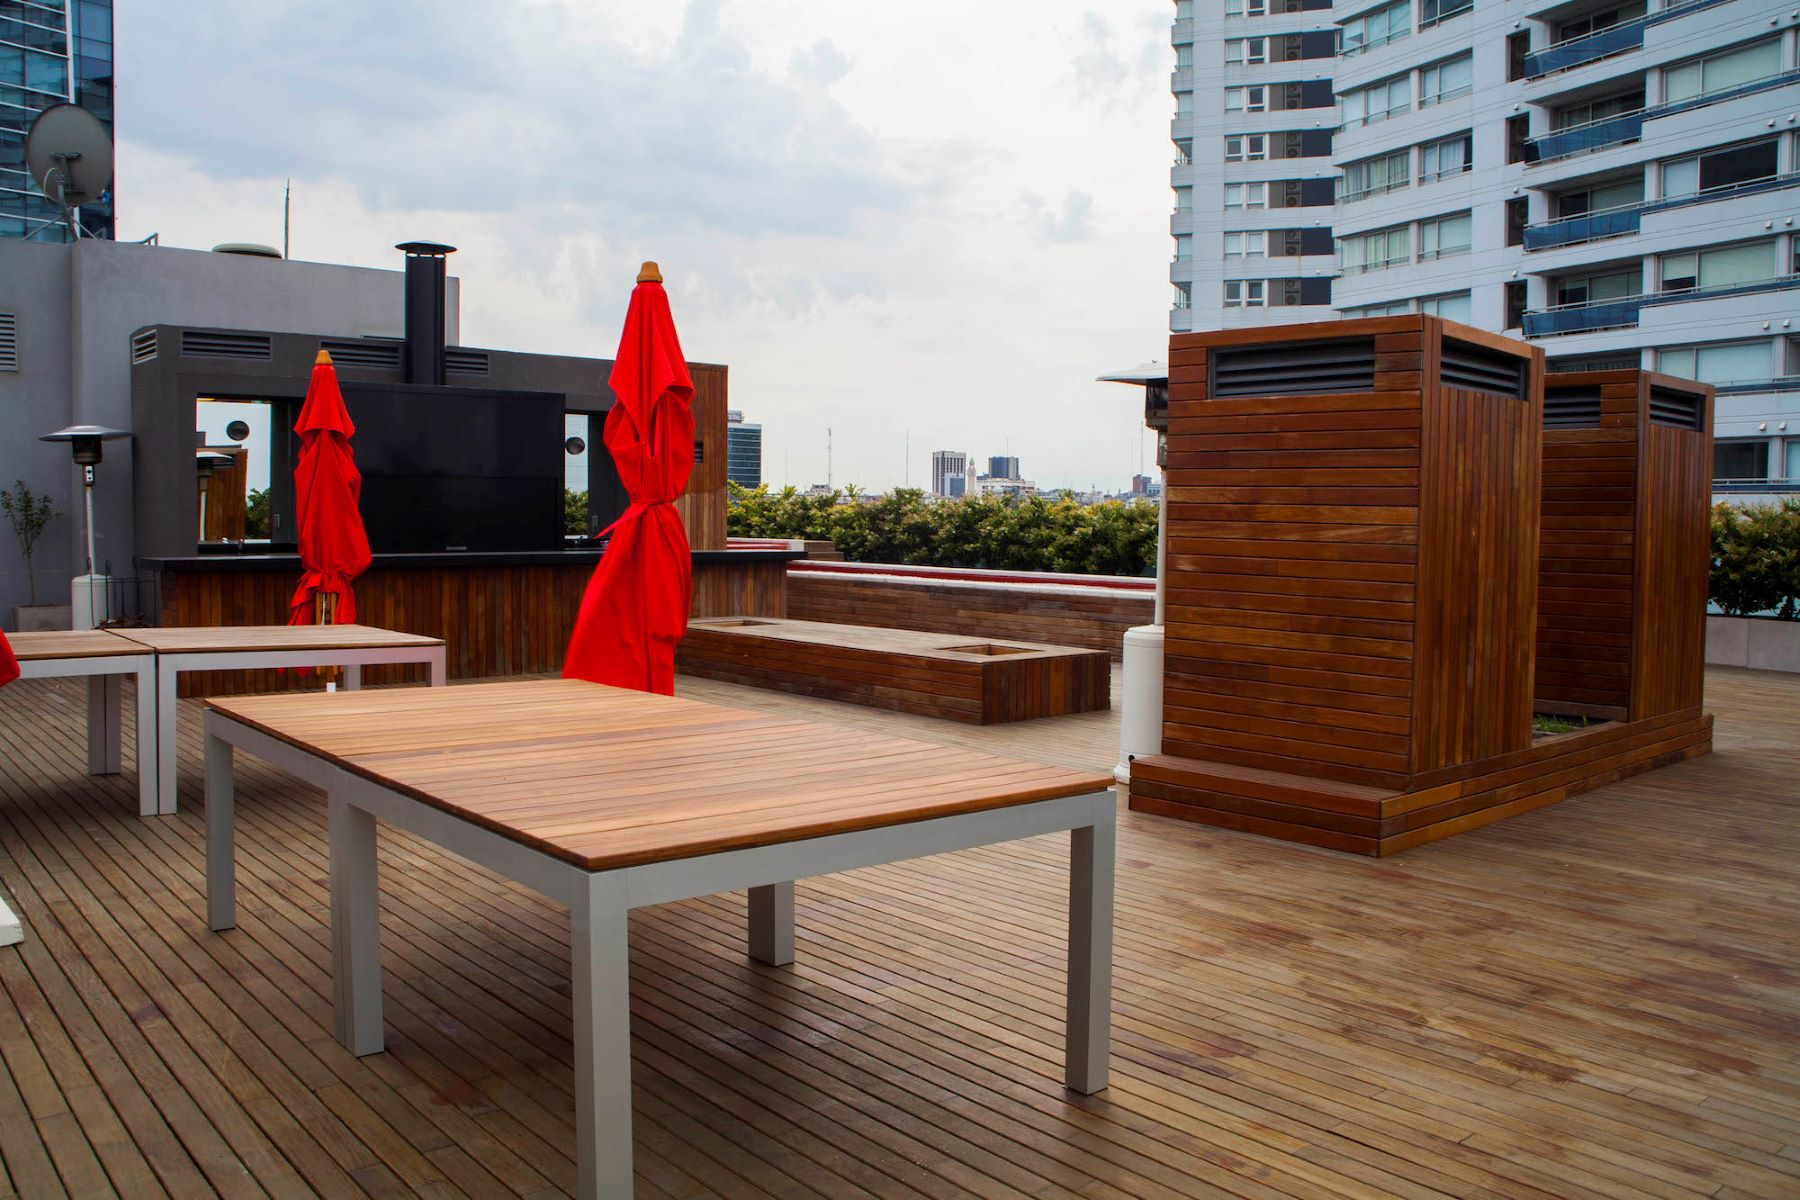 Additional photo for property listing at Harbour Residences Lola Mora 457 Buenos Aires, Buenos Aires 1107 Argentina